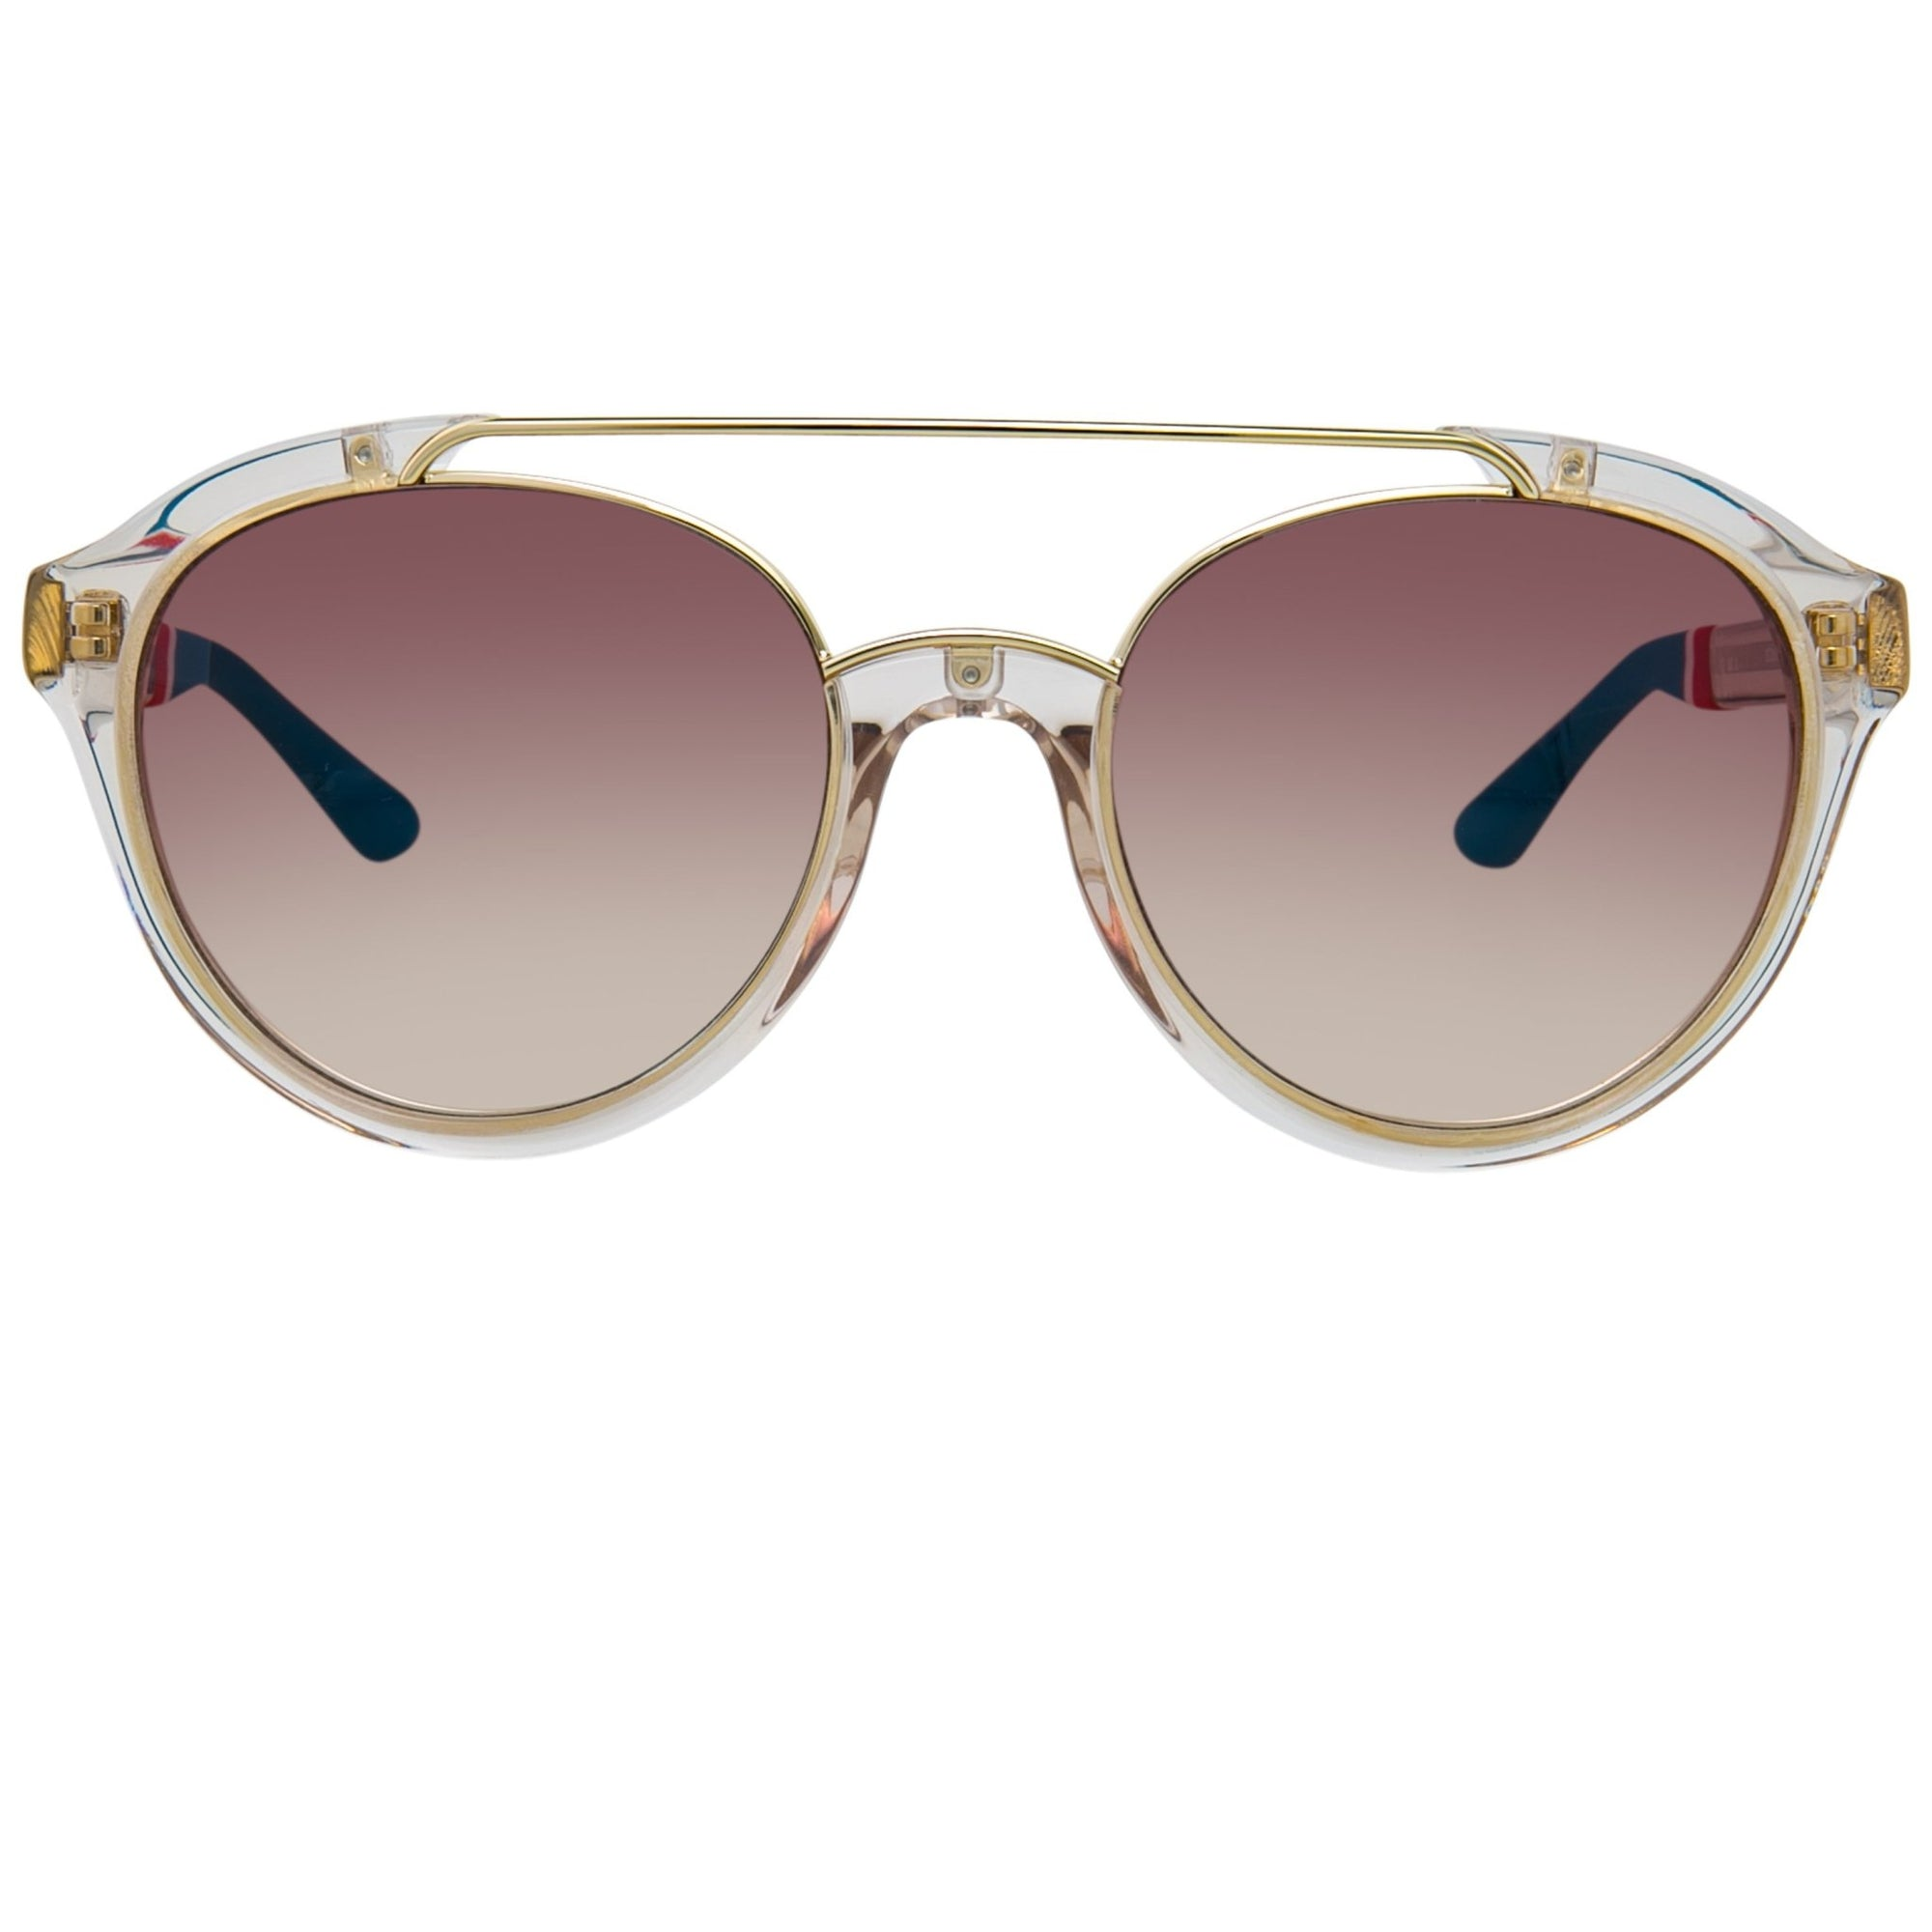 Orlebar Brown Sunglasses Oval Gold & Clear with Brown Graduated Lenses OB42C4SUN - Watches & Crystals